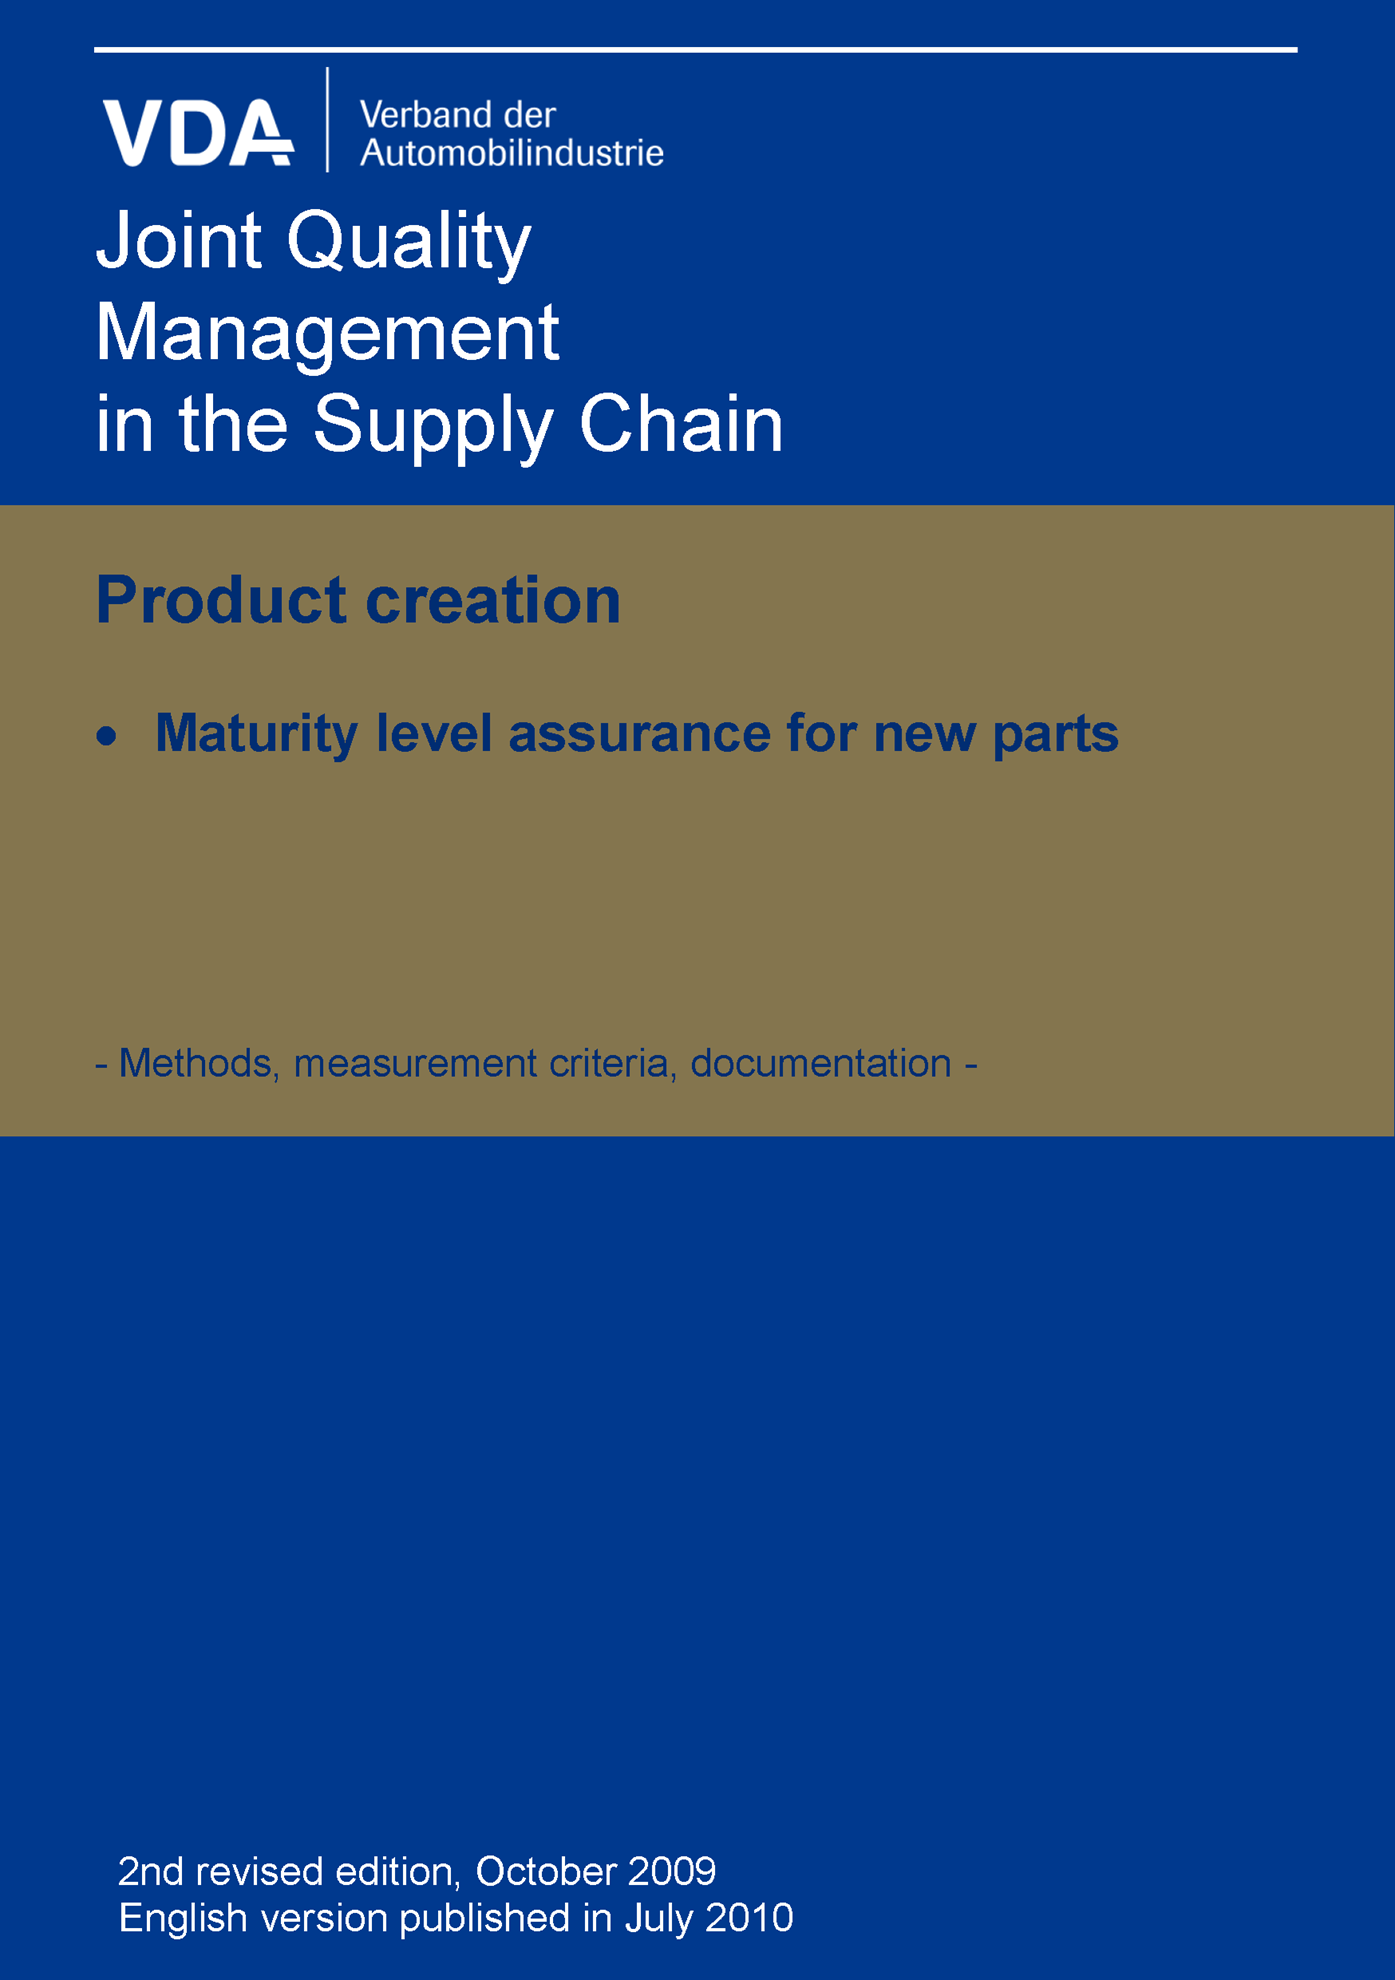 ASAM - Standardization for Automotive Development